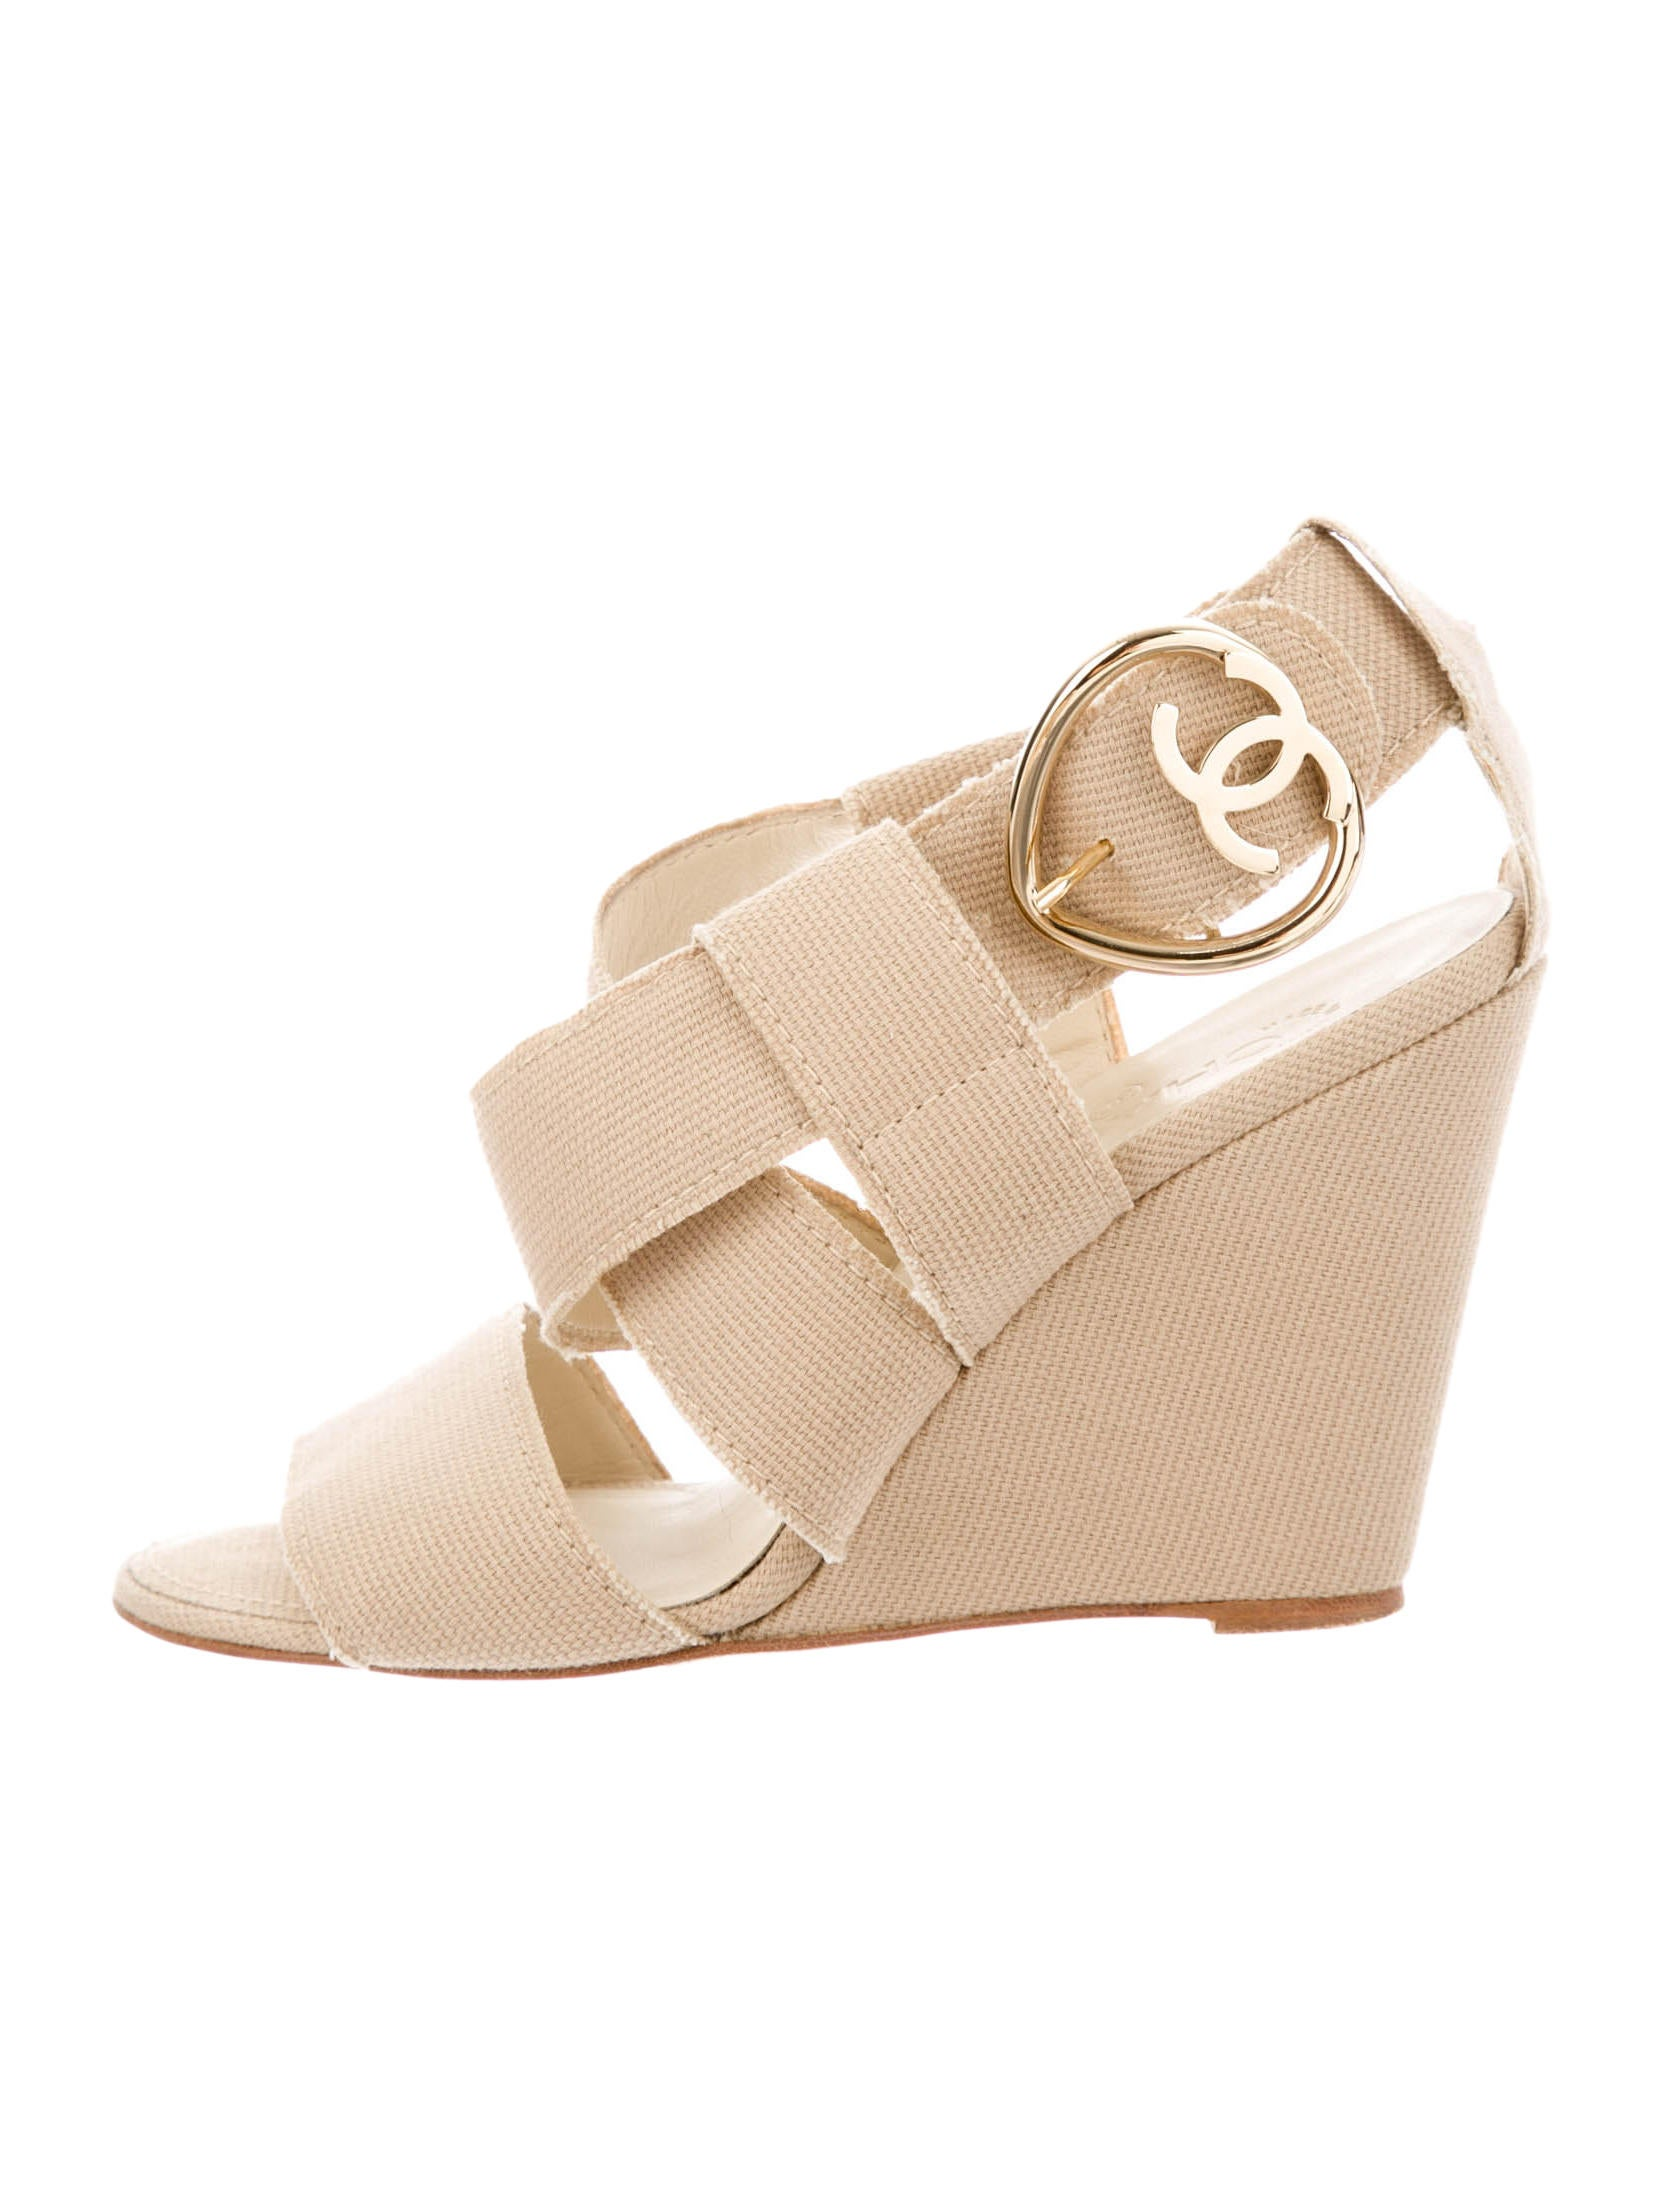 chanel wedges shoes cha74446 the realreal